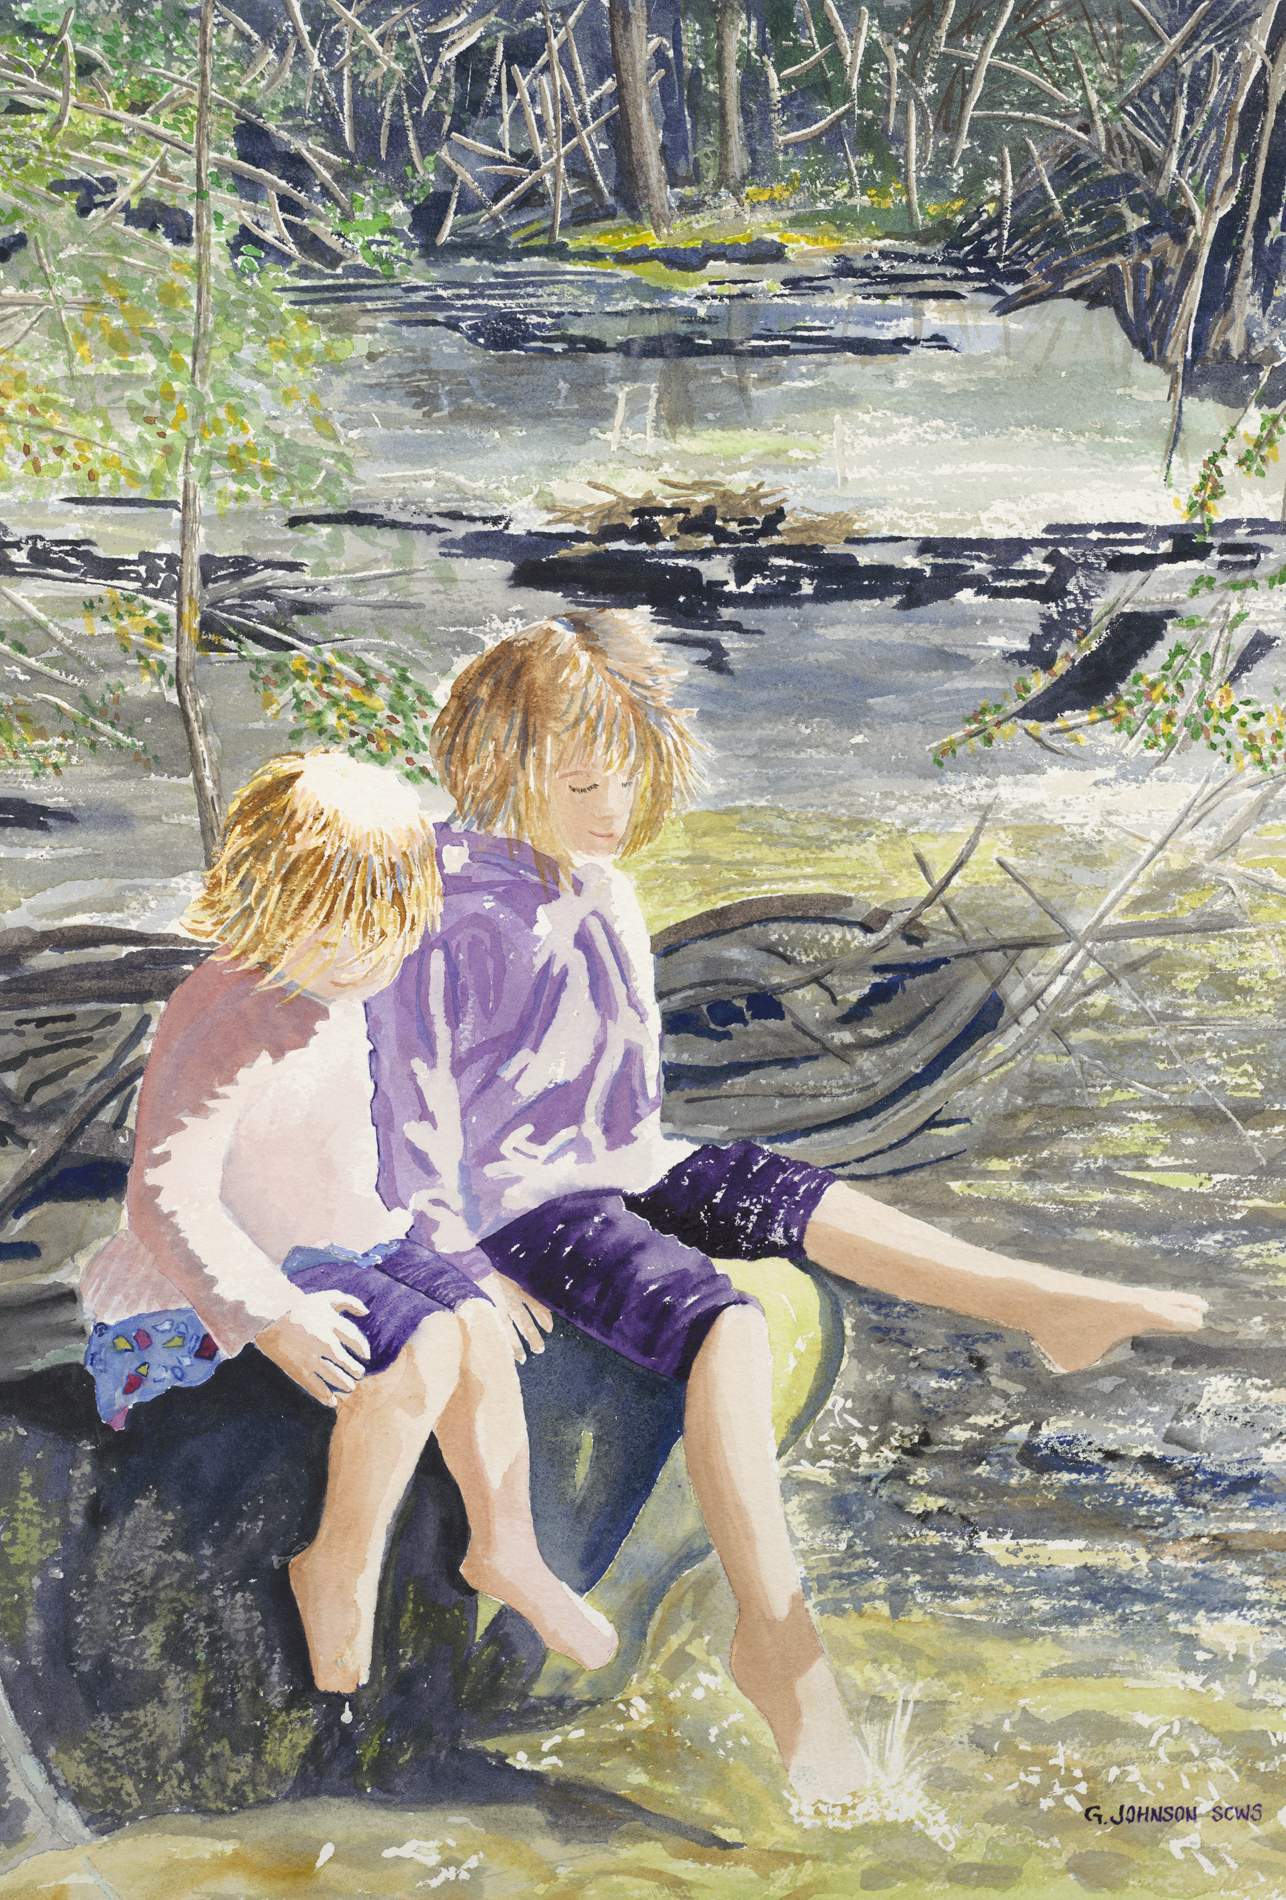 A day in the Park. Original Sold. Scene from Gulley Park, Fayetteville, AR. Reproductions available.